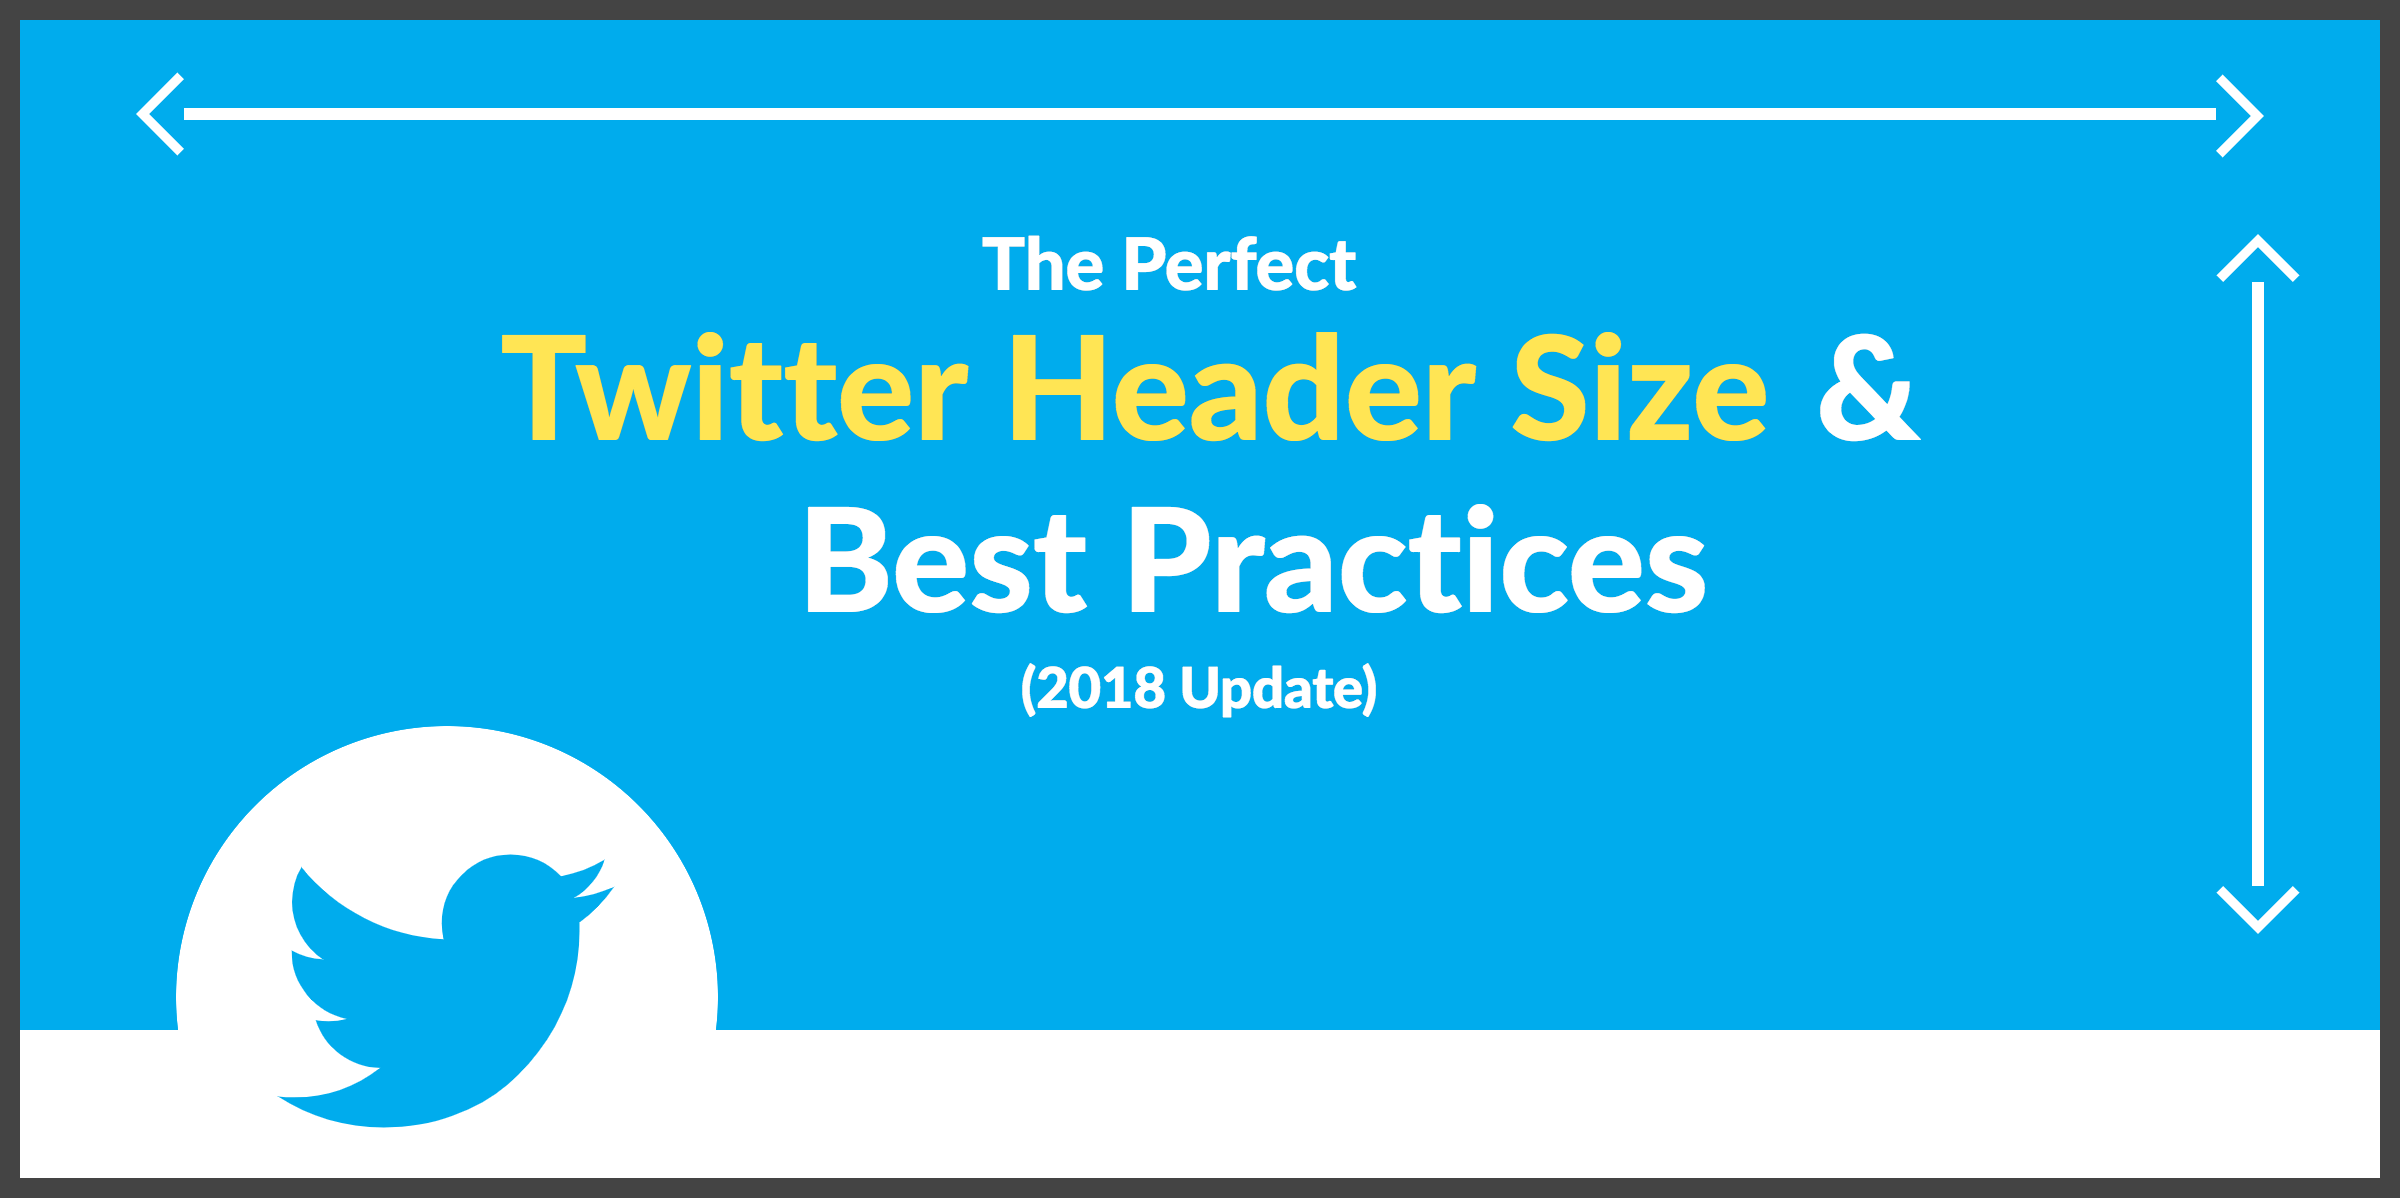 the perfect twitter header size best practices 2018 update